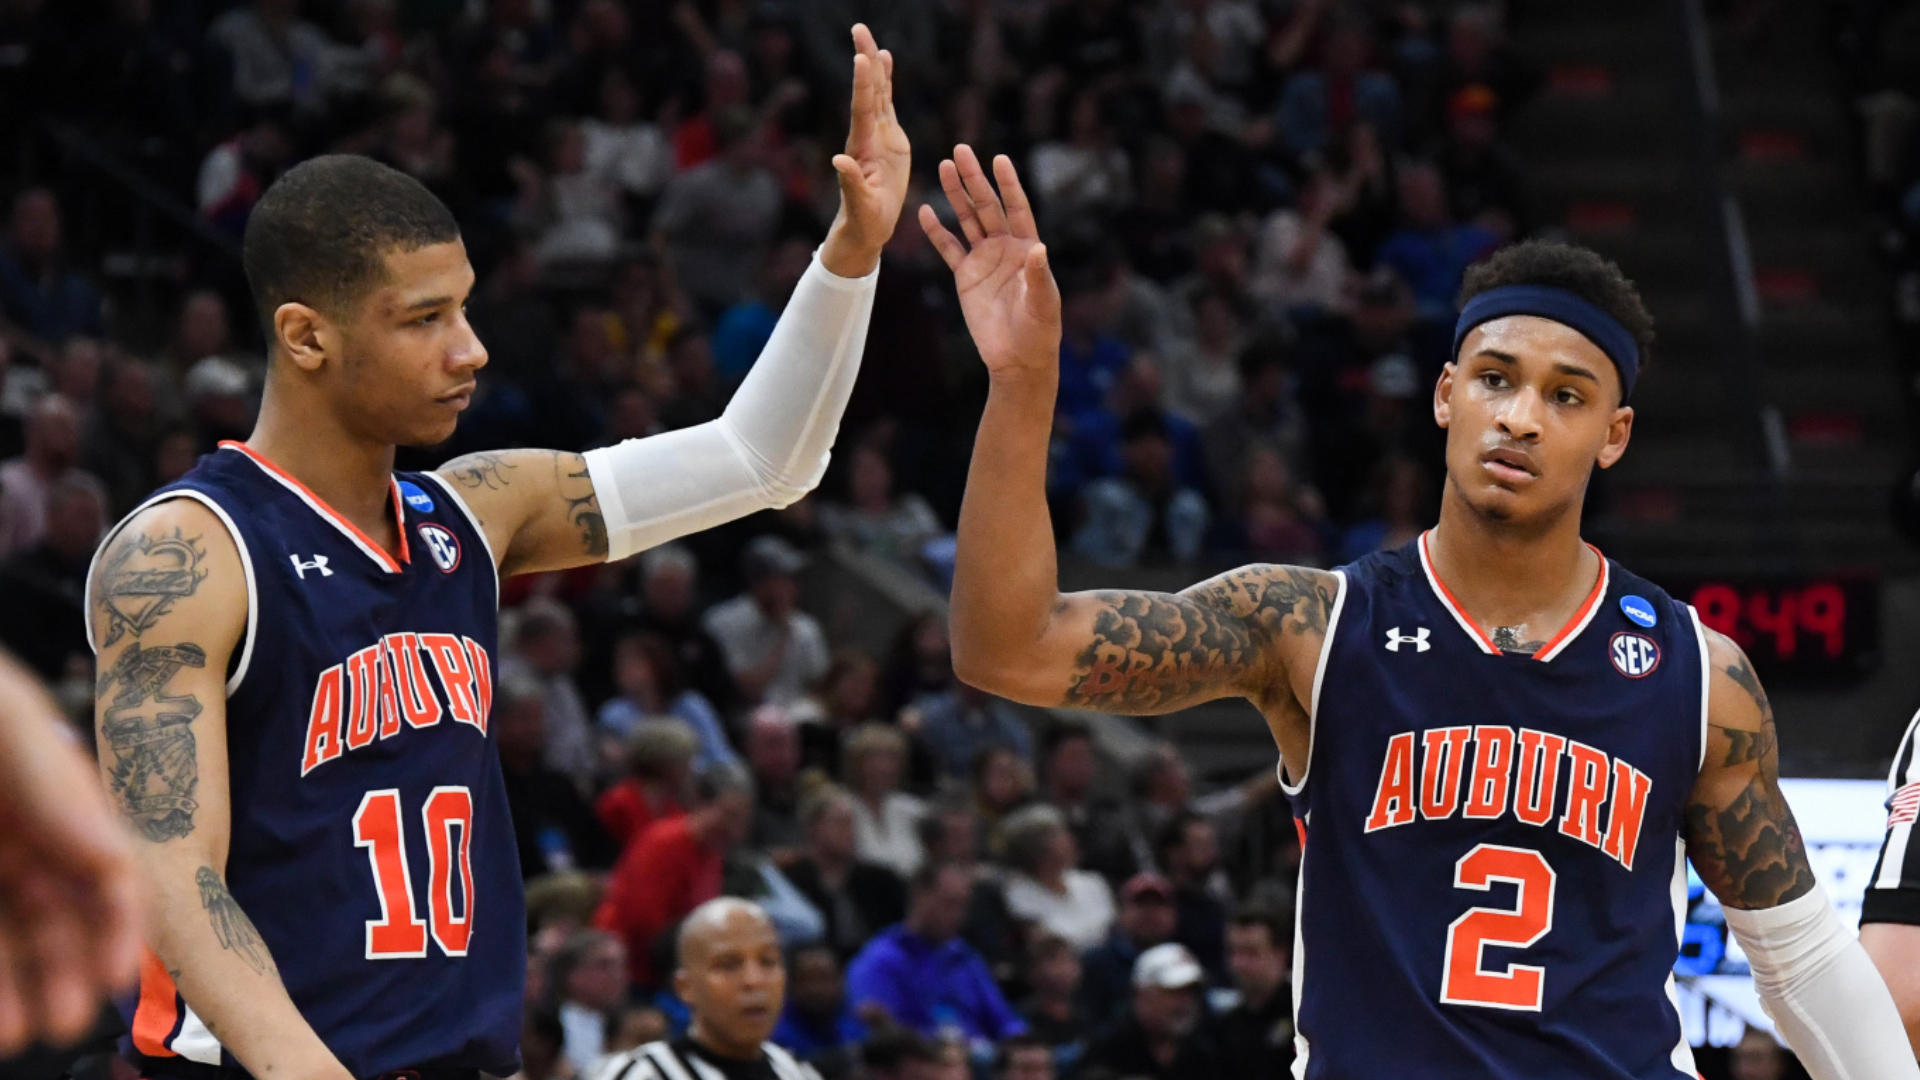 2019 March Madness bracket: Michigan vs. Texas Tech odds, Sweet 16 picks, predictions from model on 11-5 roll